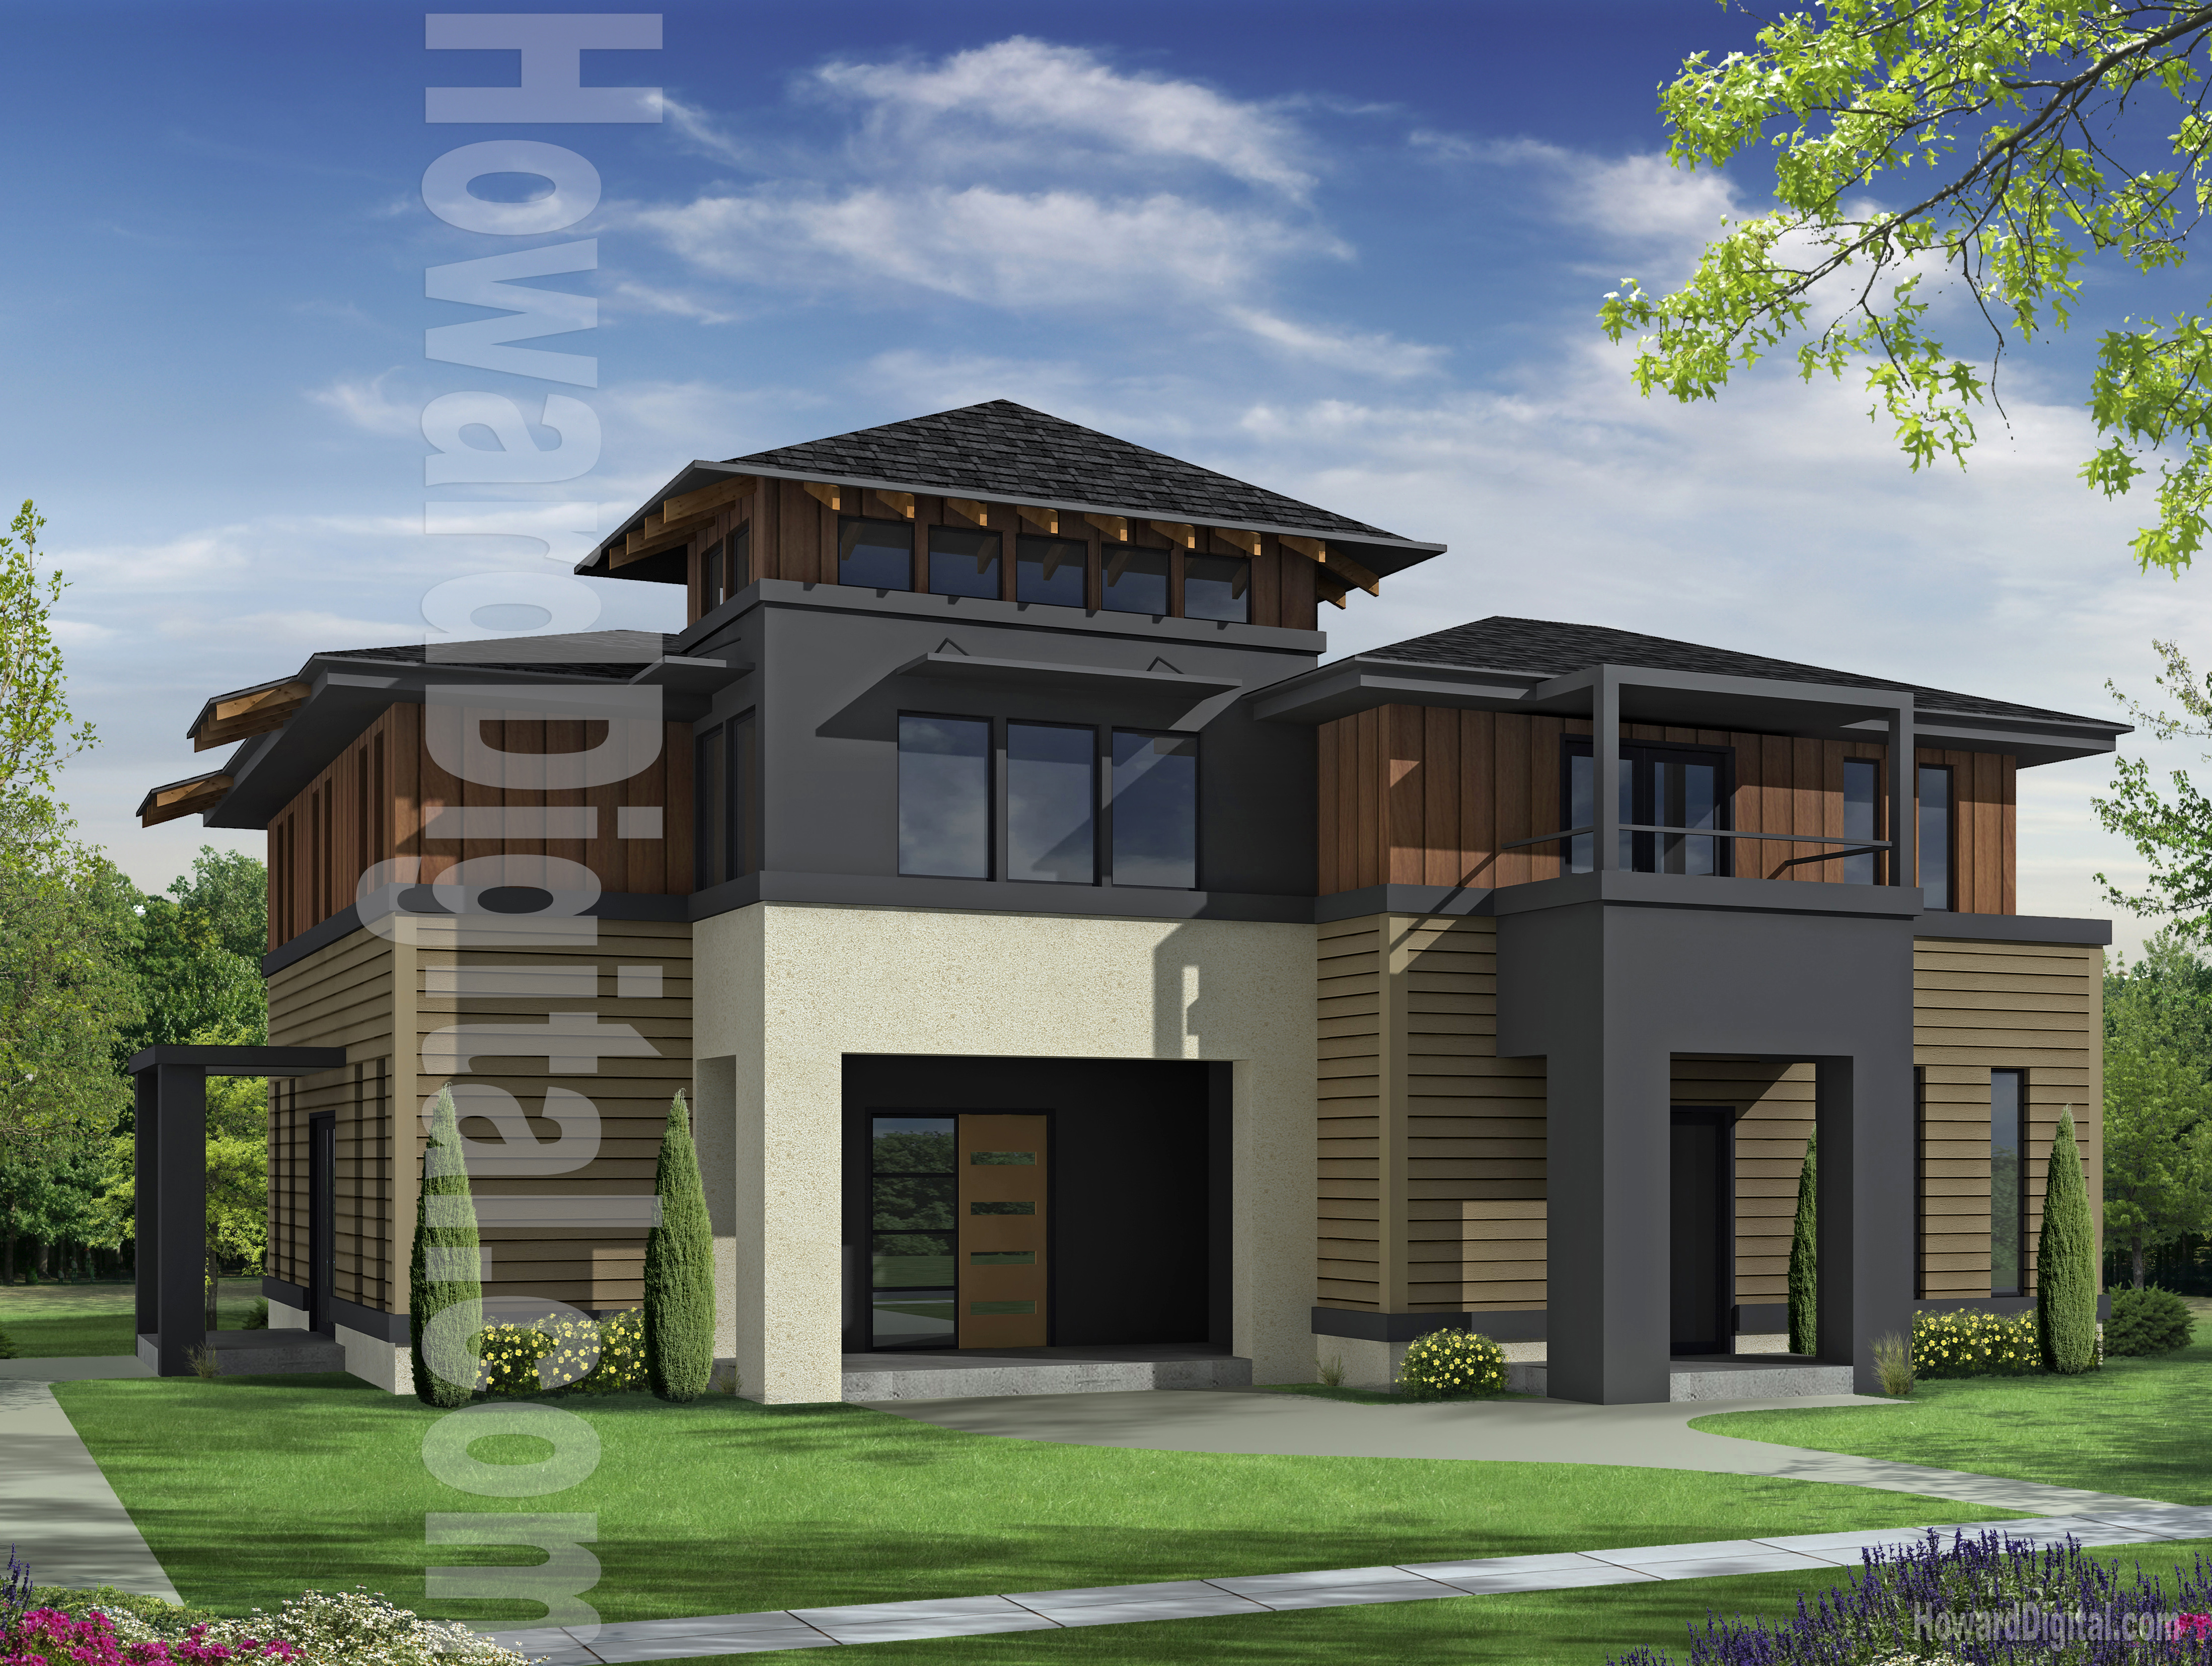 House illustration home rendering hardie design guide Home 3d model